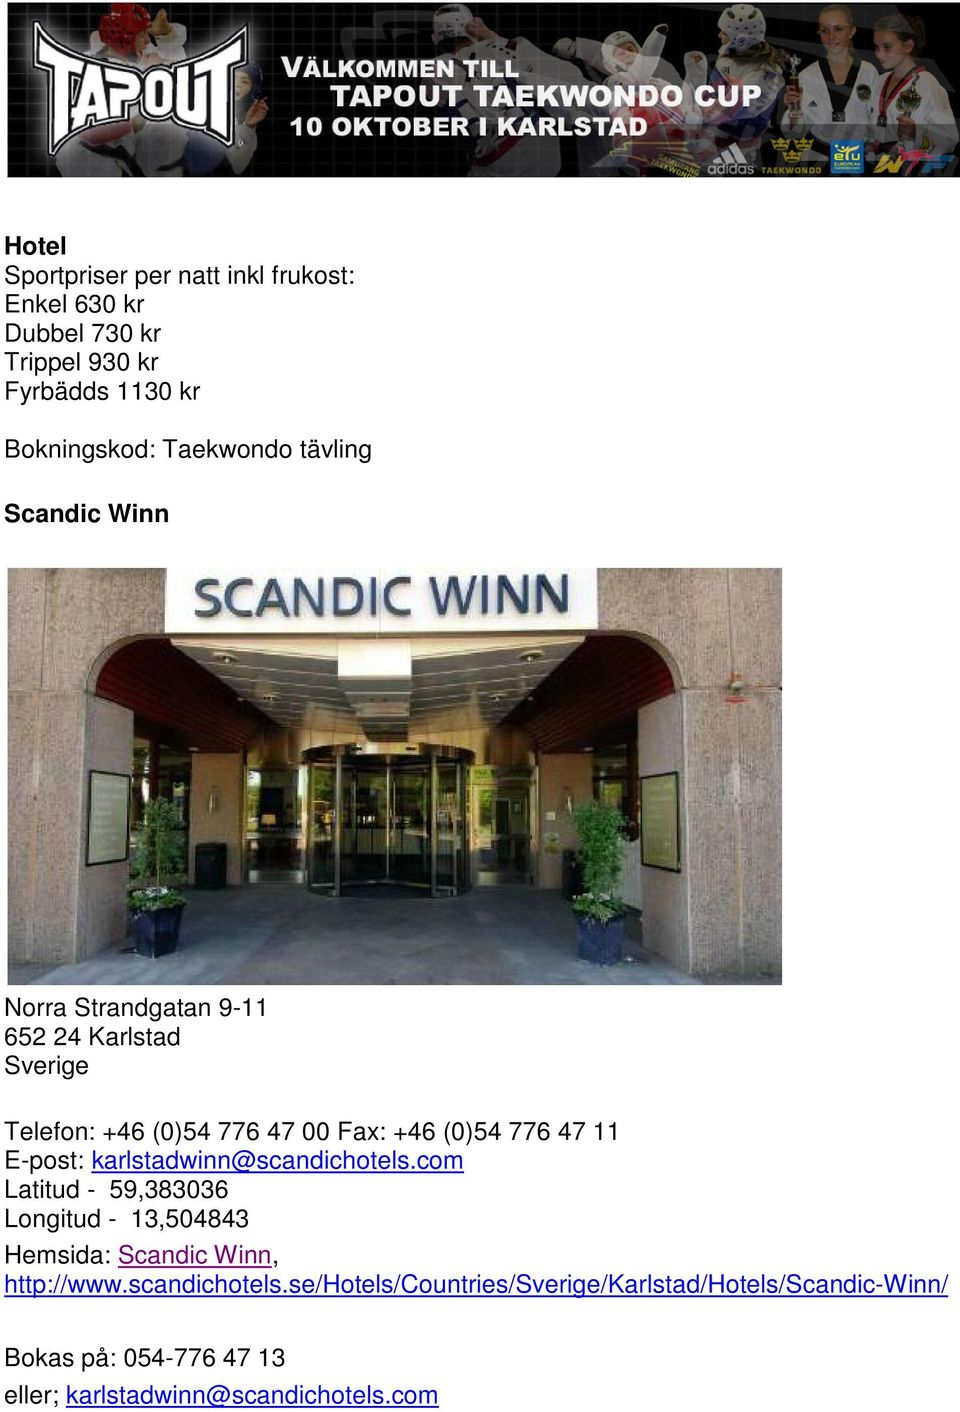 E-post: karlstadwinn@scandichotels.com Latitud - 59,383036 Longitud - 13,504843 Hemsida: Scandic Winn, http://www.